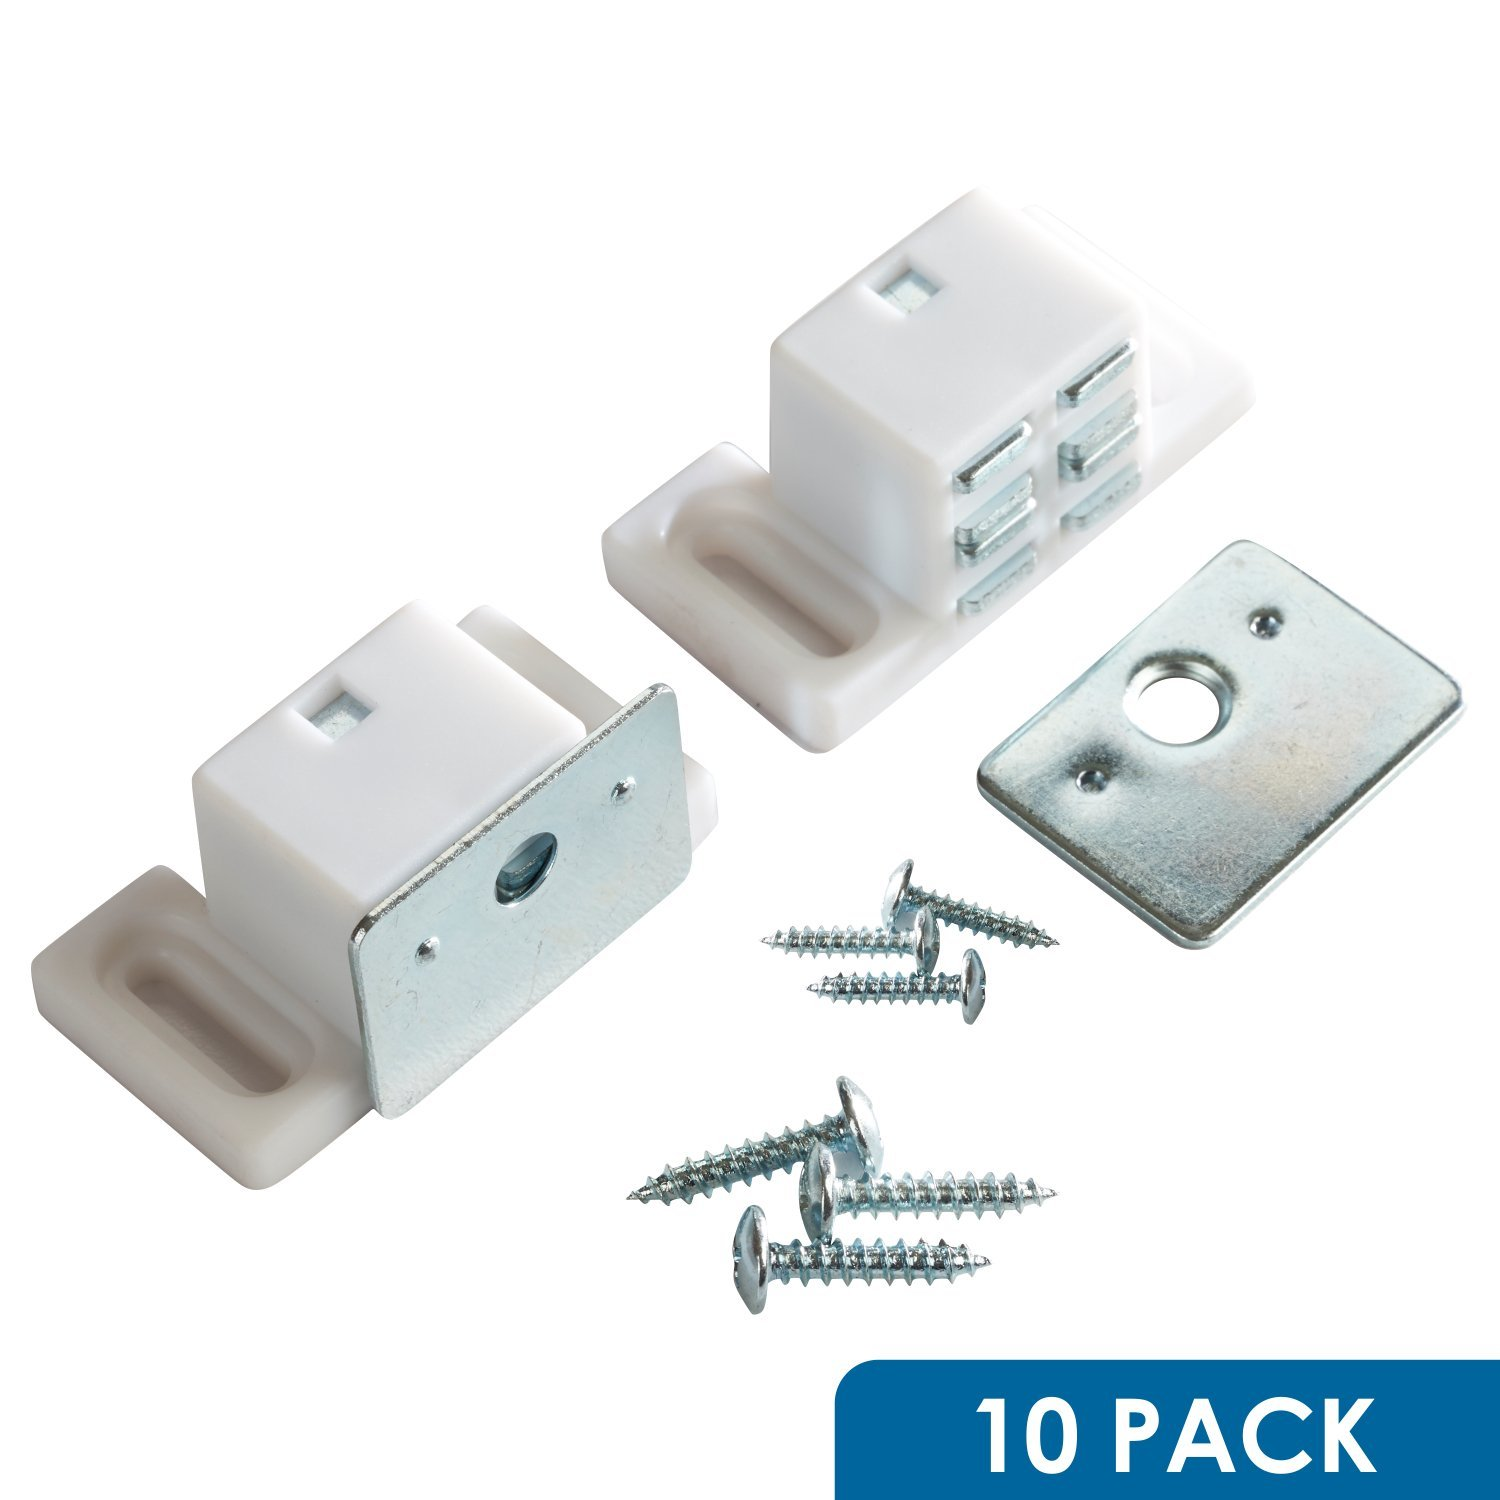 Rok Hardware Heavy Duty 15 lb High Magnetic Catch, White / Nickel, 10 Pack